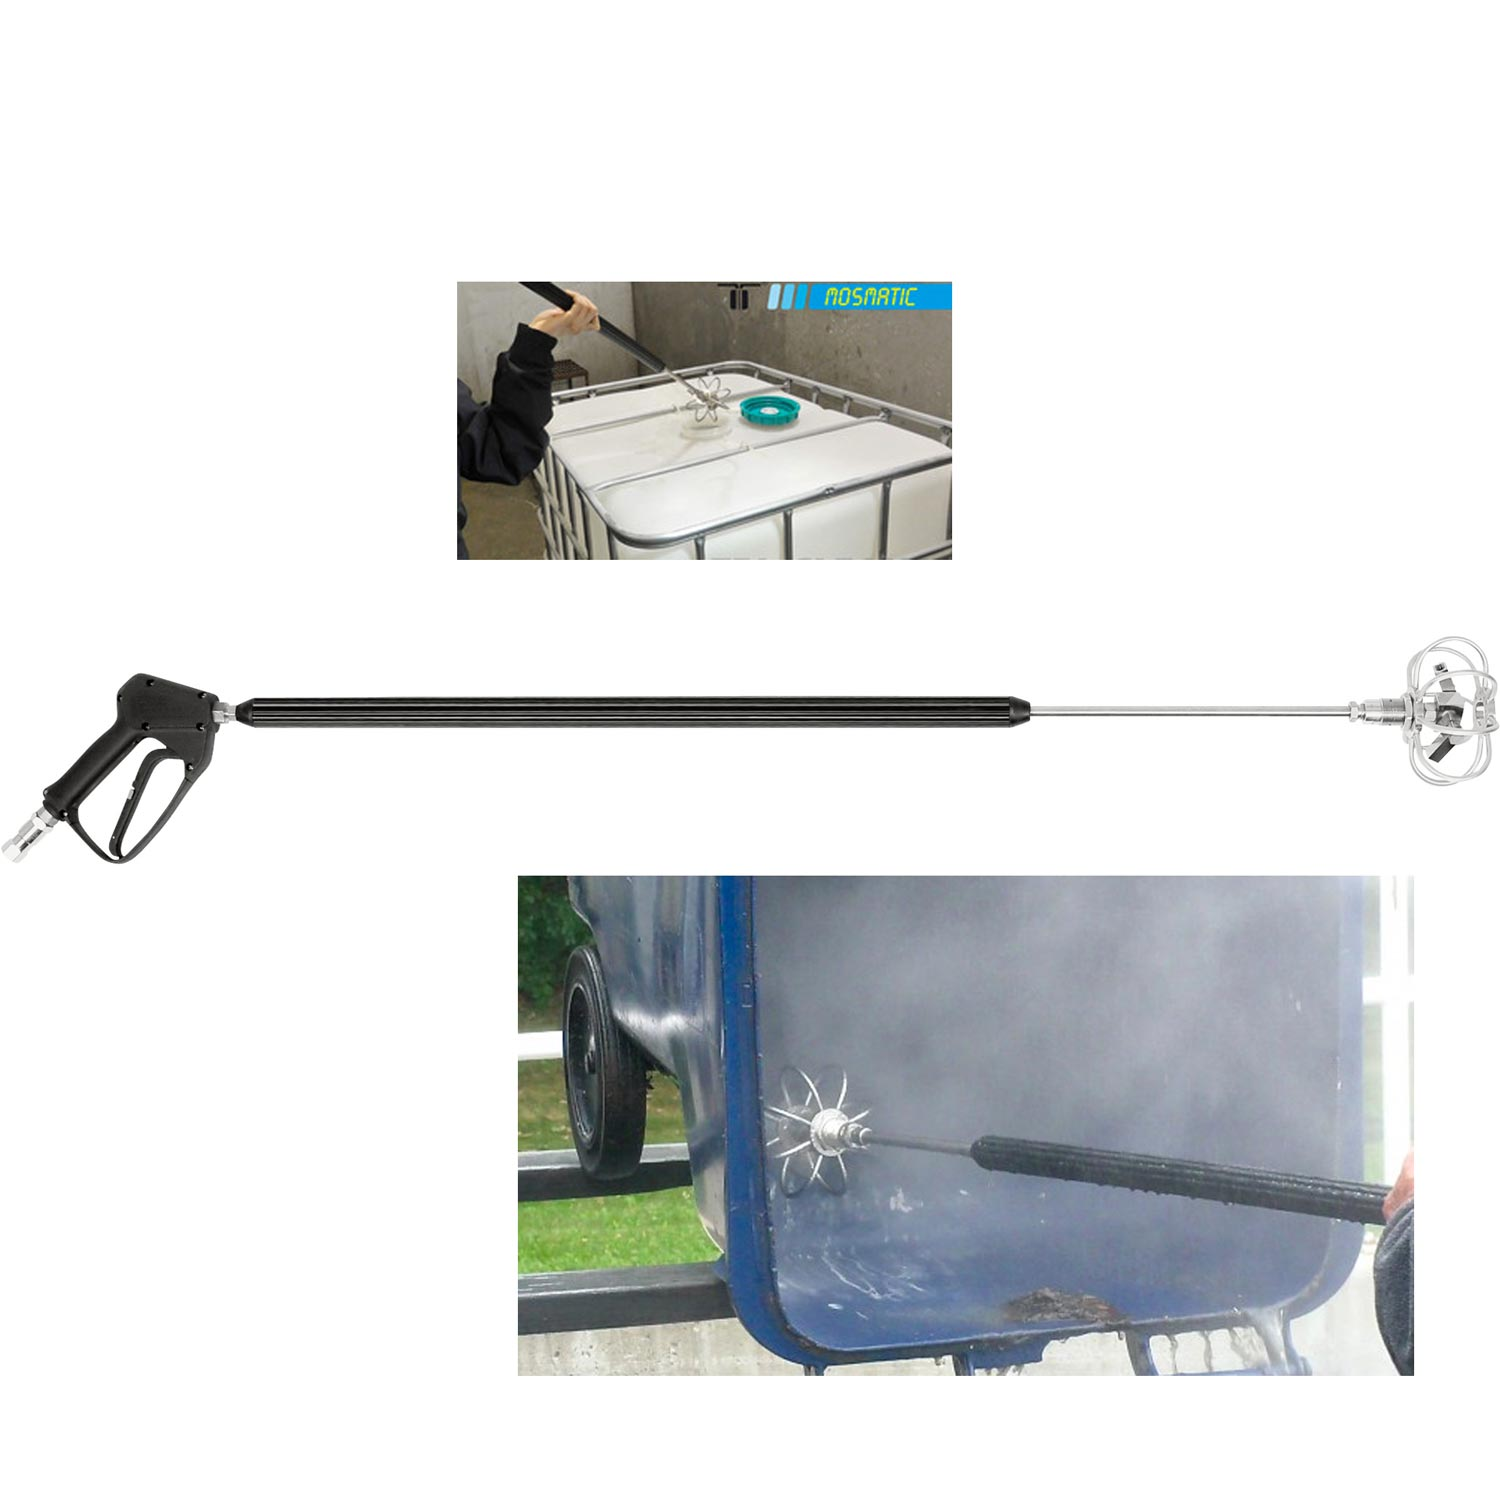 Mosmatic 81.925 Turbo Cleaning TRL Lance with Gun for Wheelie Bin and Tank Cleaning